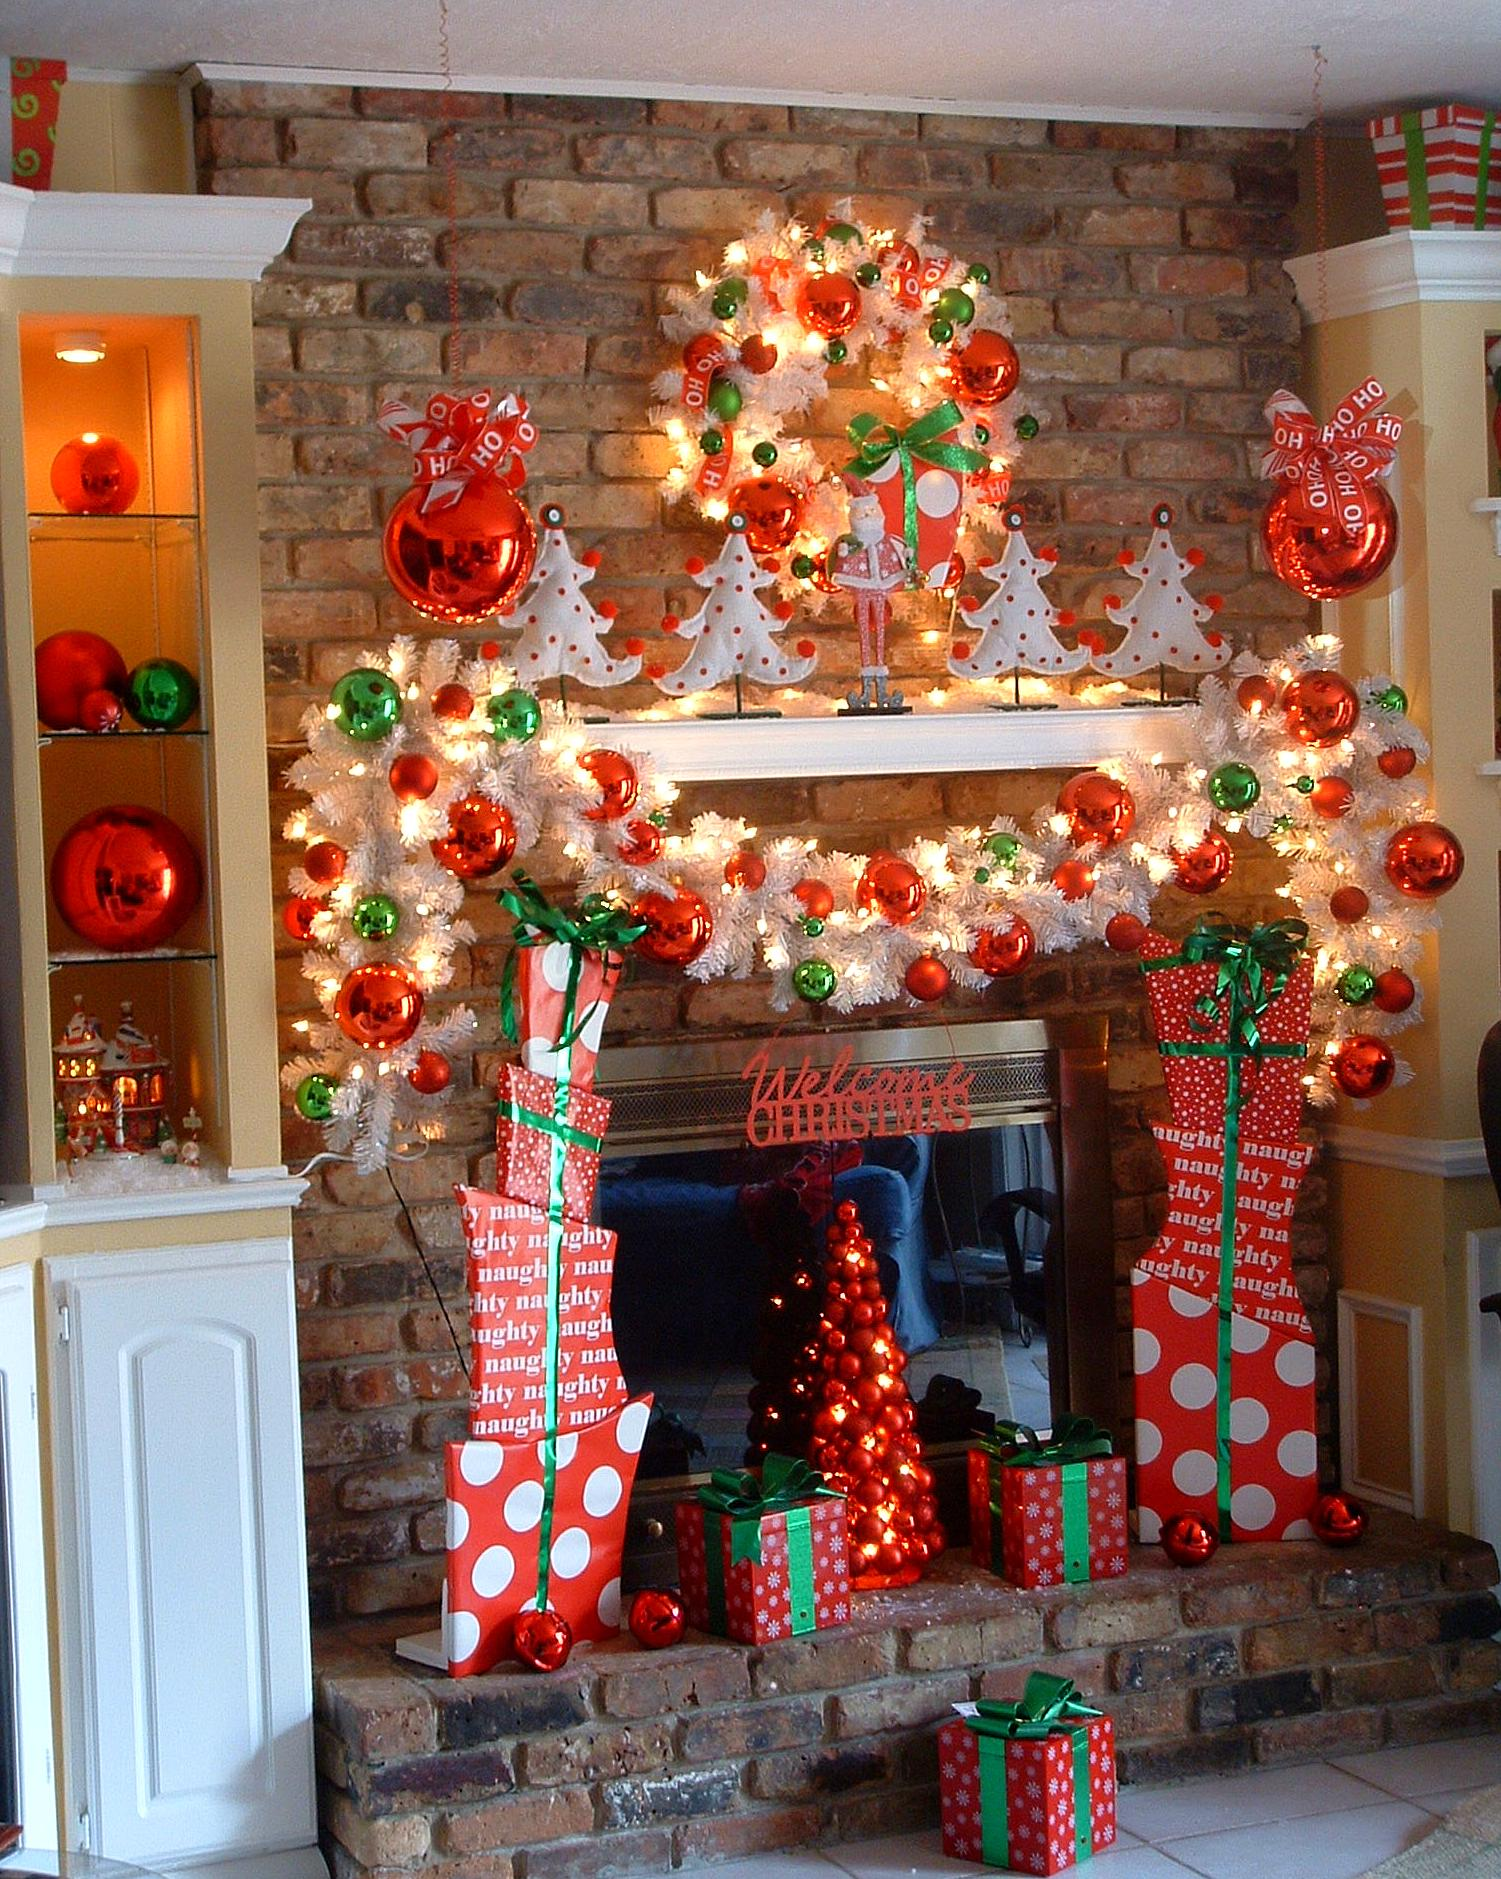 adorable-fireplace-christmas-decorations-presenting-colorful-garland-with-small-christmas-tree-and-cute-wreath-mounted-brick-wall-ideas-fireplace-christmas-decorations-ideas-home-decor-accessori.